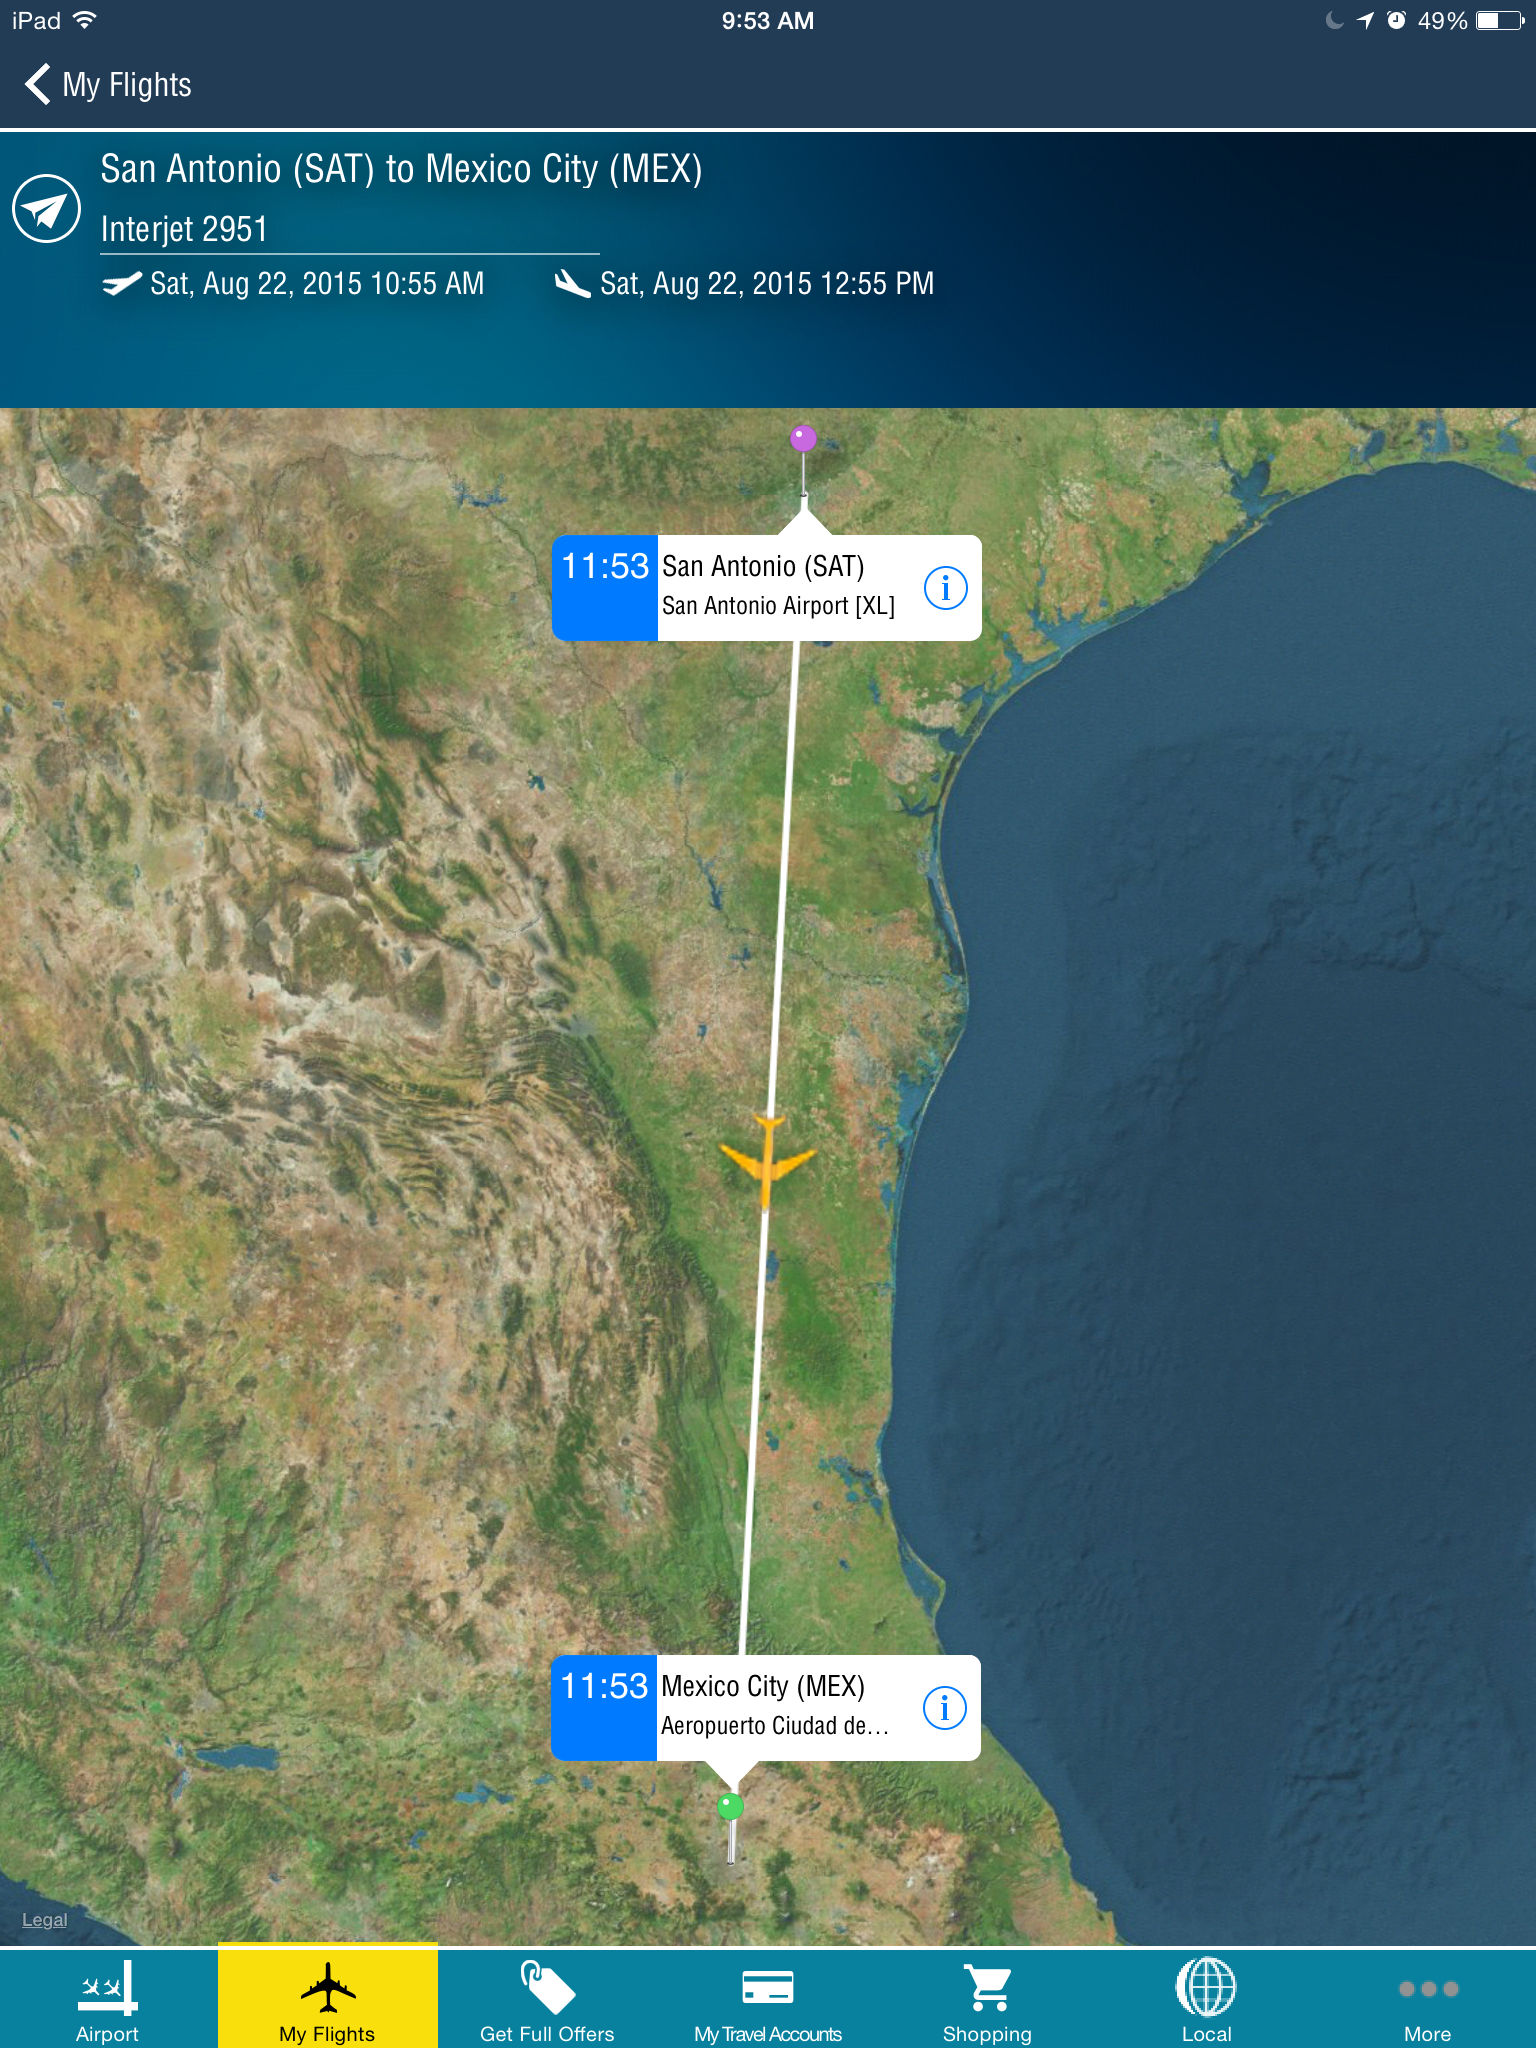 Mexico city airport mex flight tracker mex app ranking and store the app also includes packing plus a checklist for travelers did you remember everything no problems with packing plus that is included along with a gumiabroncs Choice Image